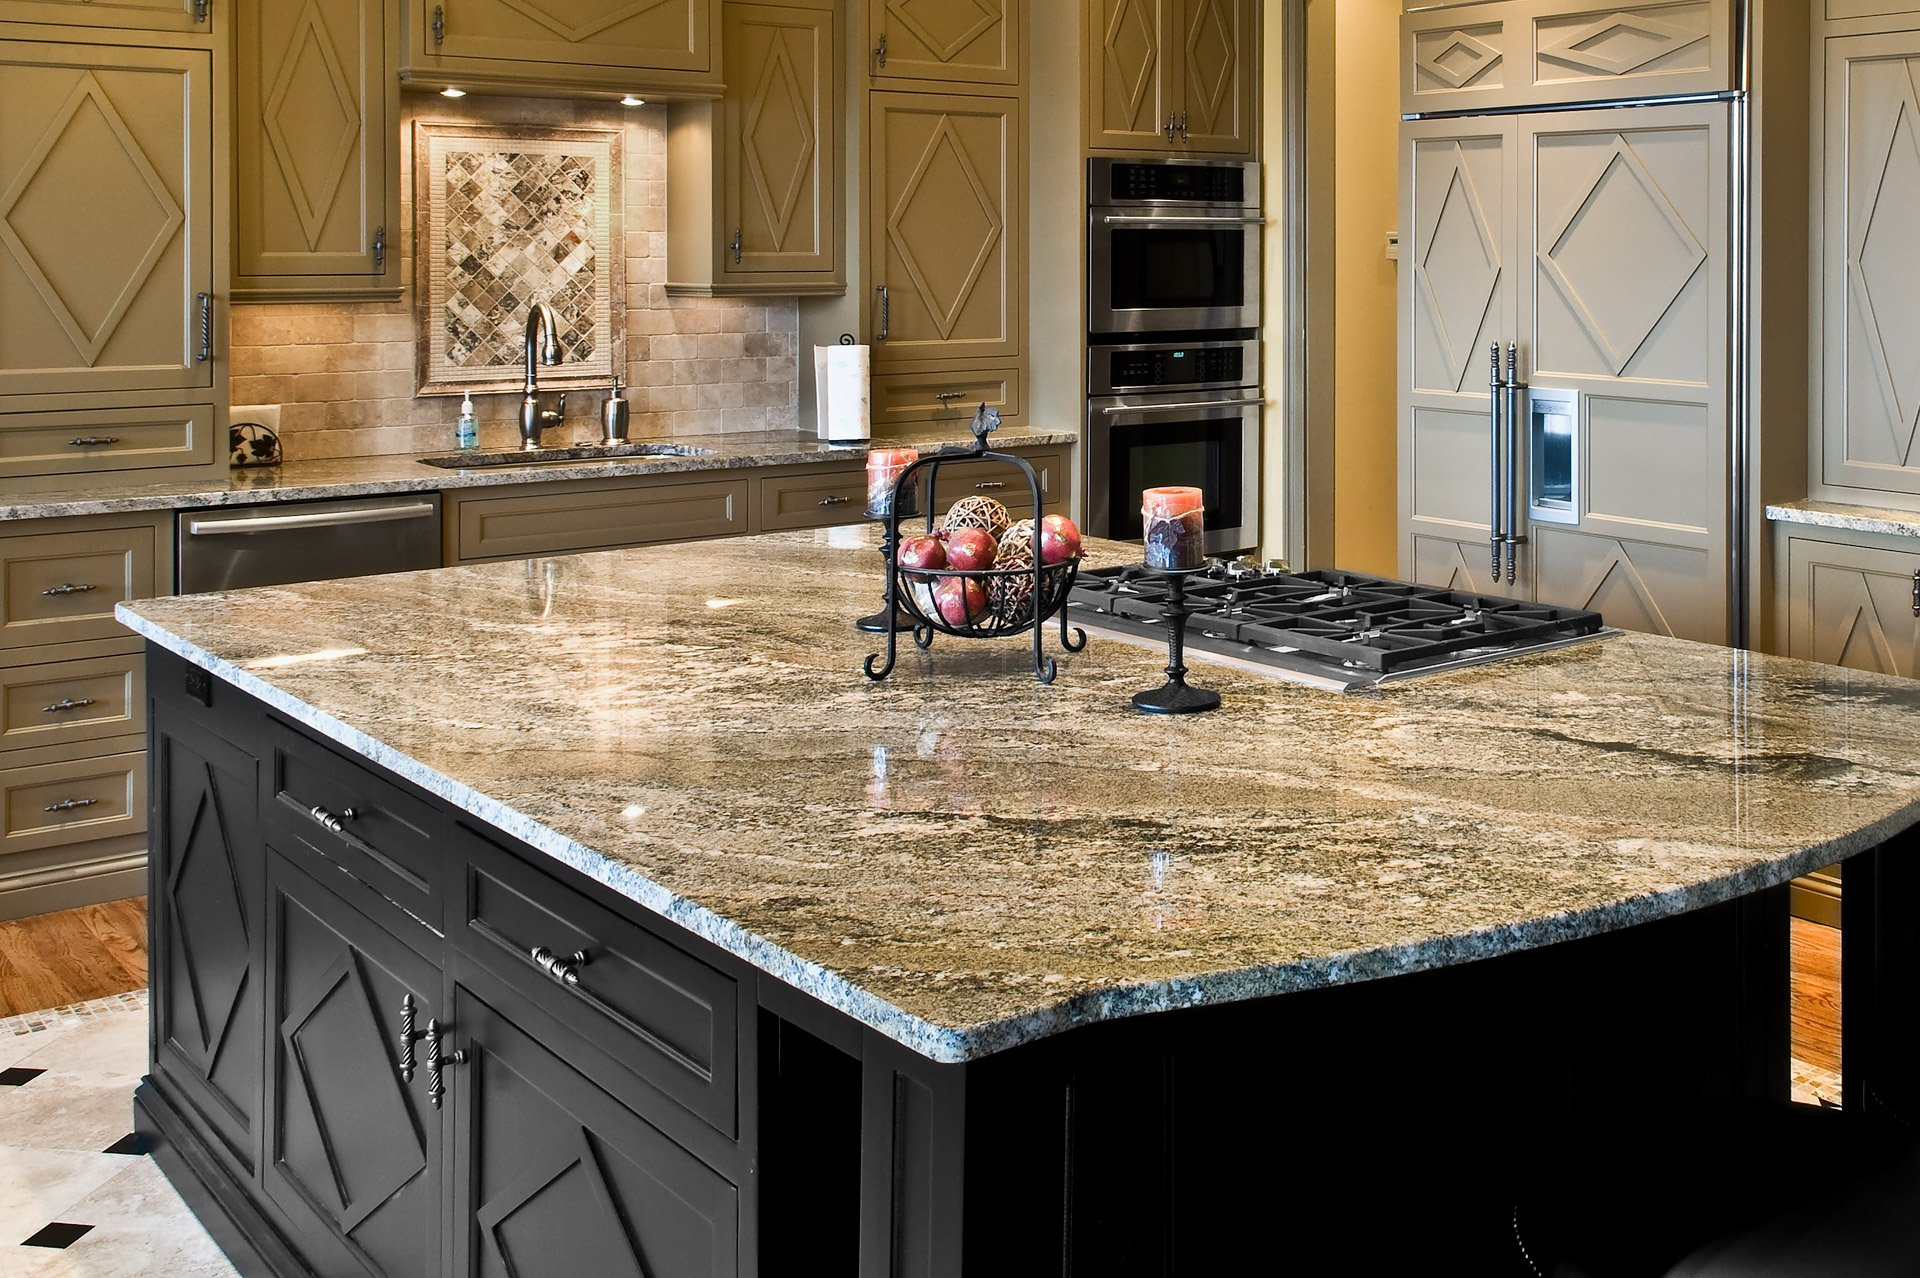 How Much Do Granite Kitchen Countertops Cost?